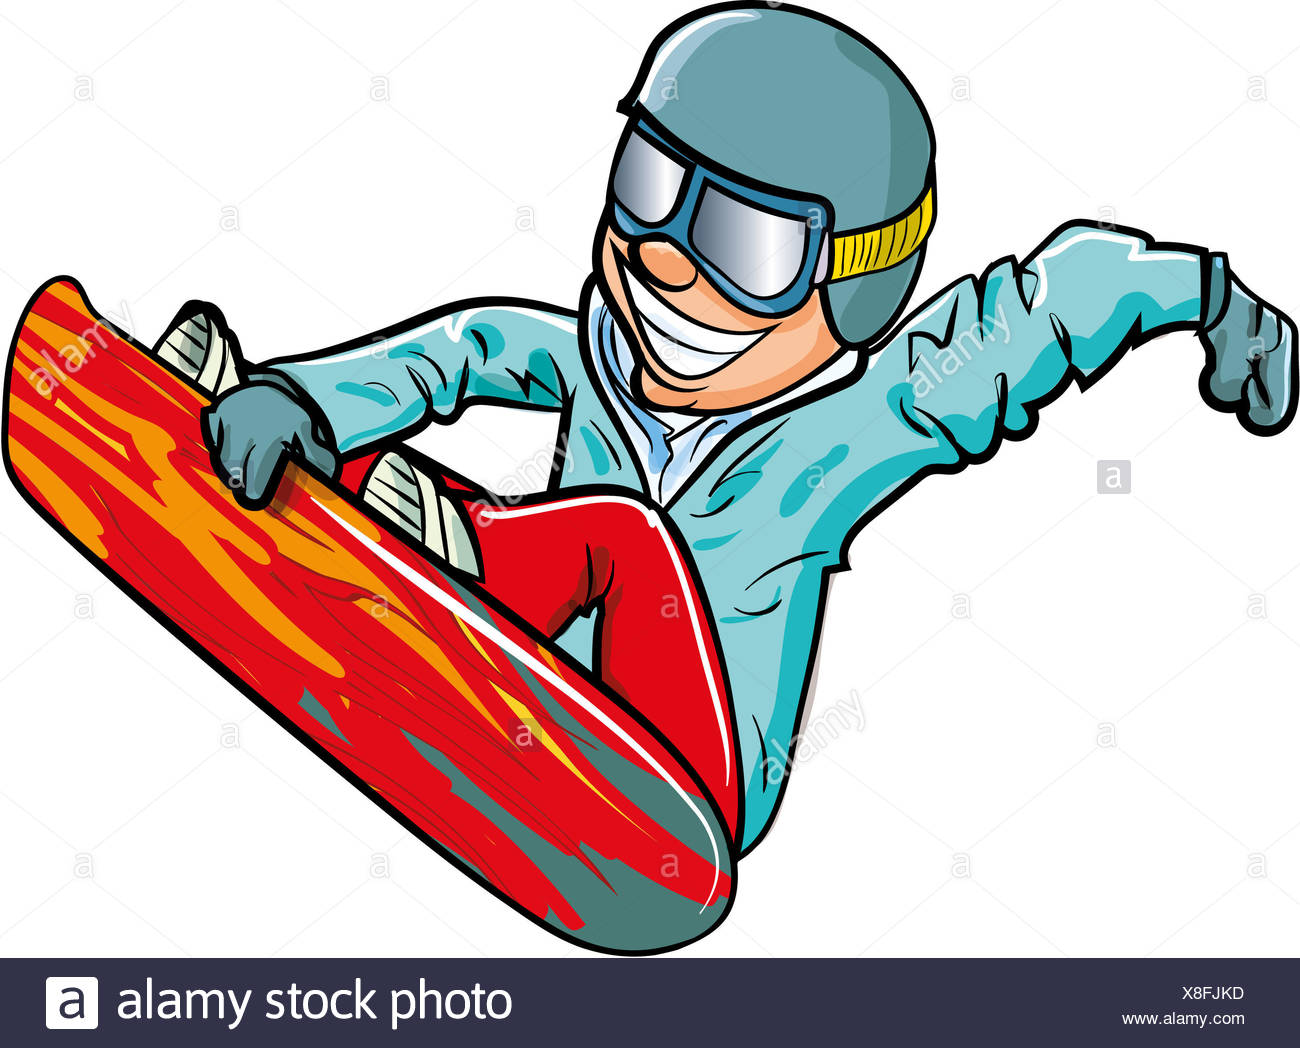 Cartoon Snowboarder High Resolution Stock Photography And Images Alamy